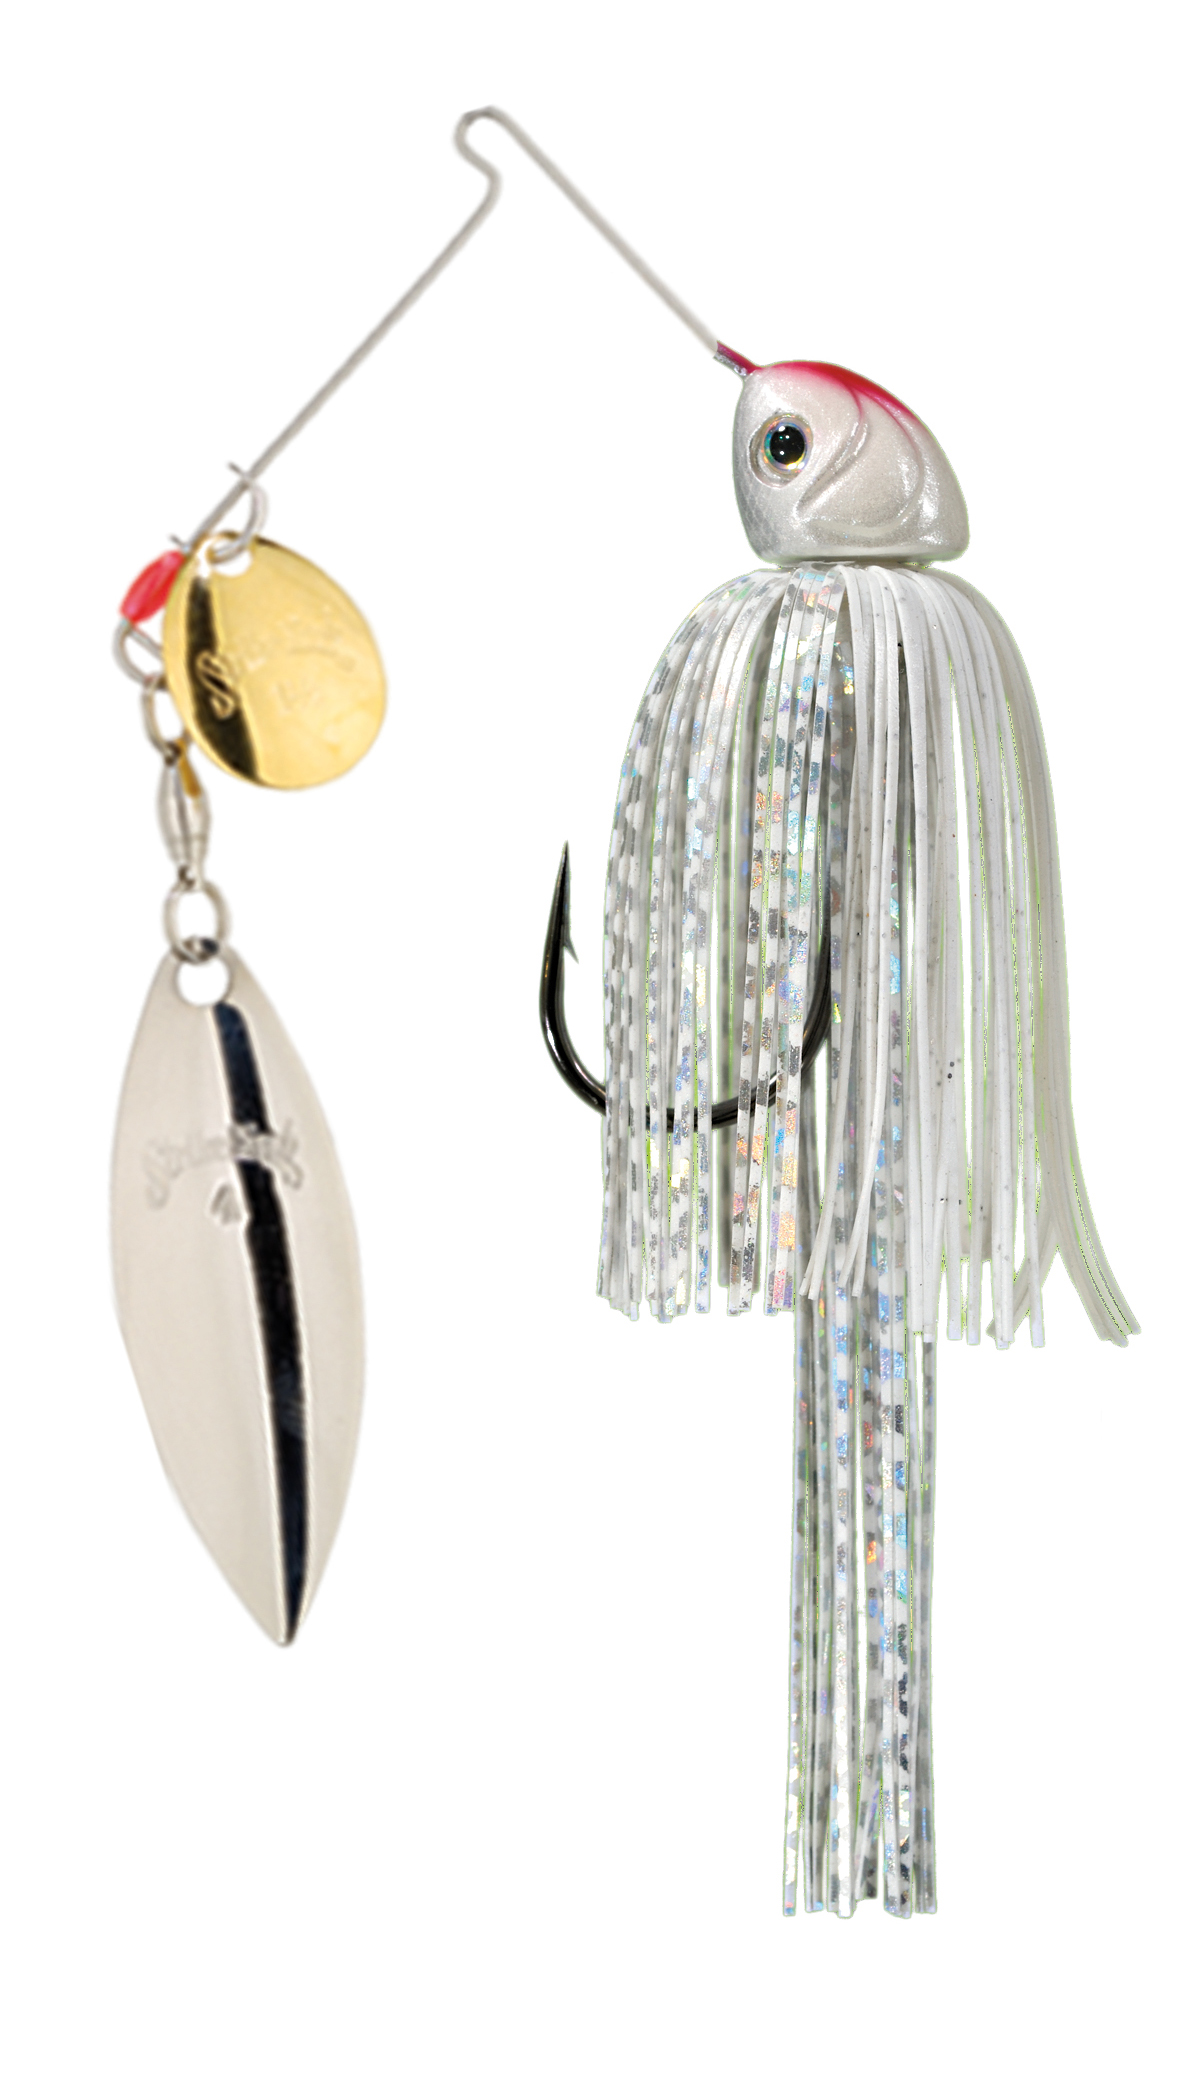 Strike King Lures – Spinnerbaits – Colorado Willow – Hack Attack Heavy Cover - 3/4oz - HAHC34CW-204GS - Super White